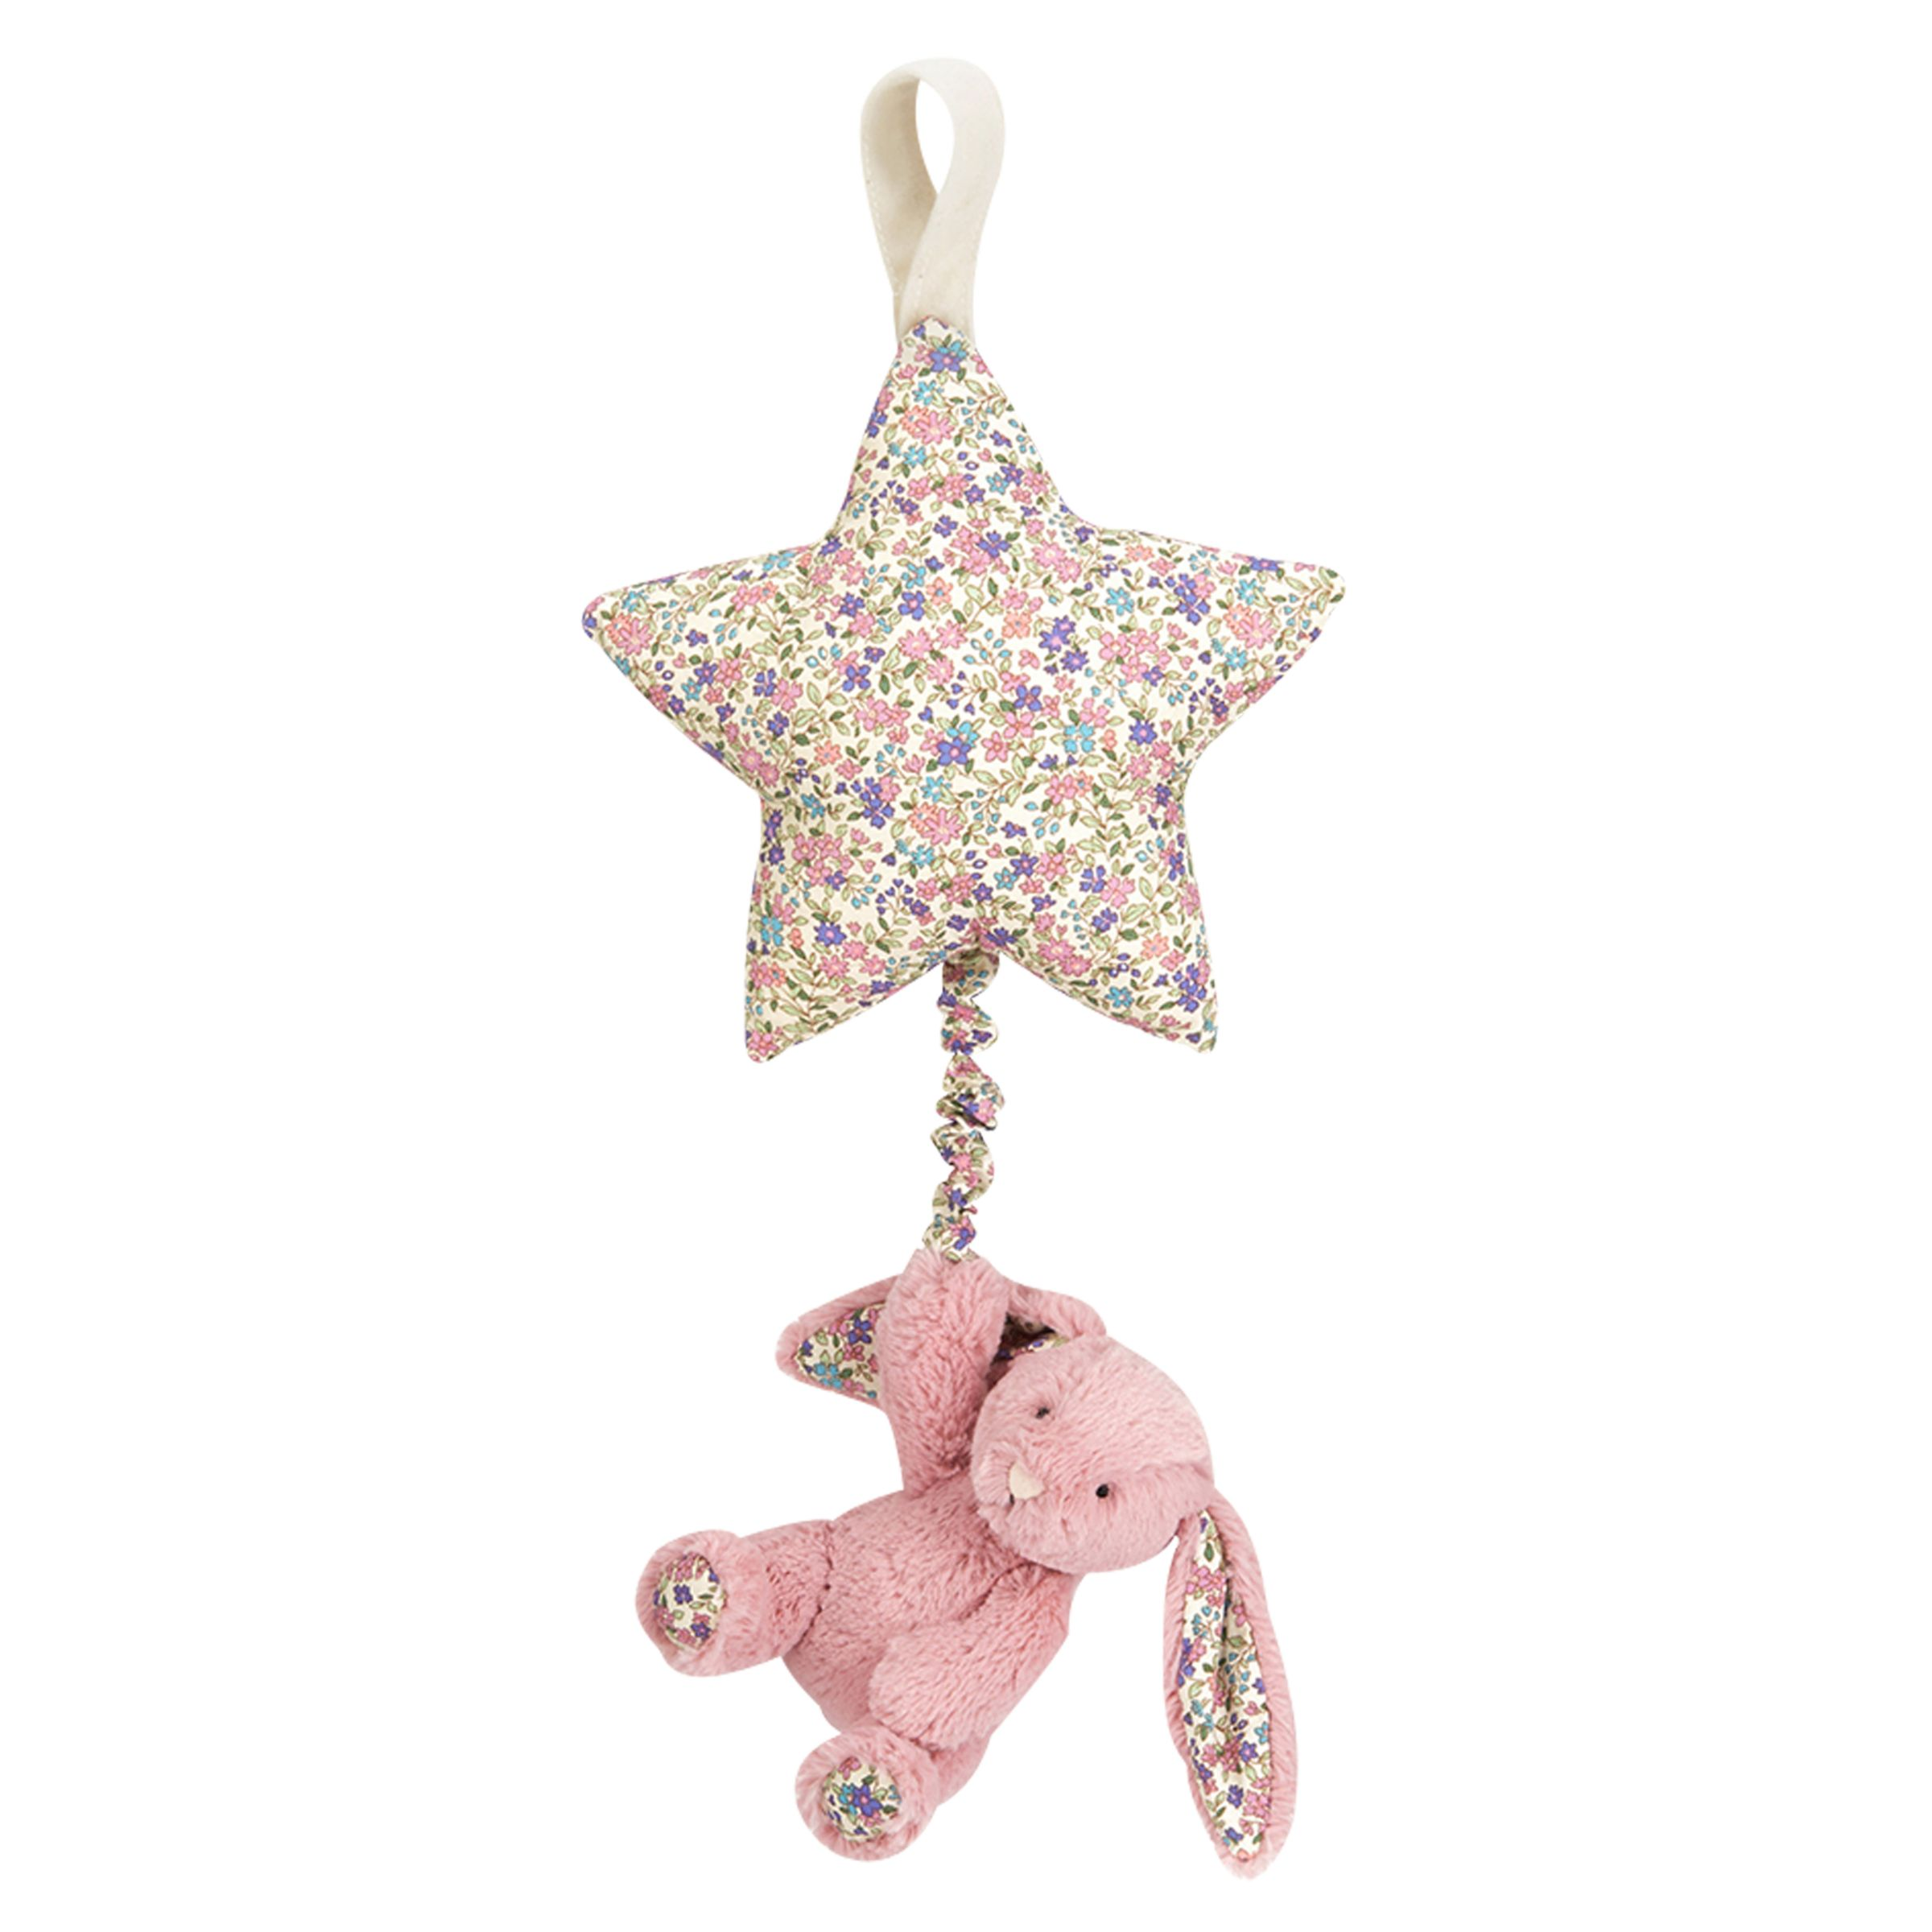 Jellycat Jellycat Blossom Bunny Musical Pull Soft Toy